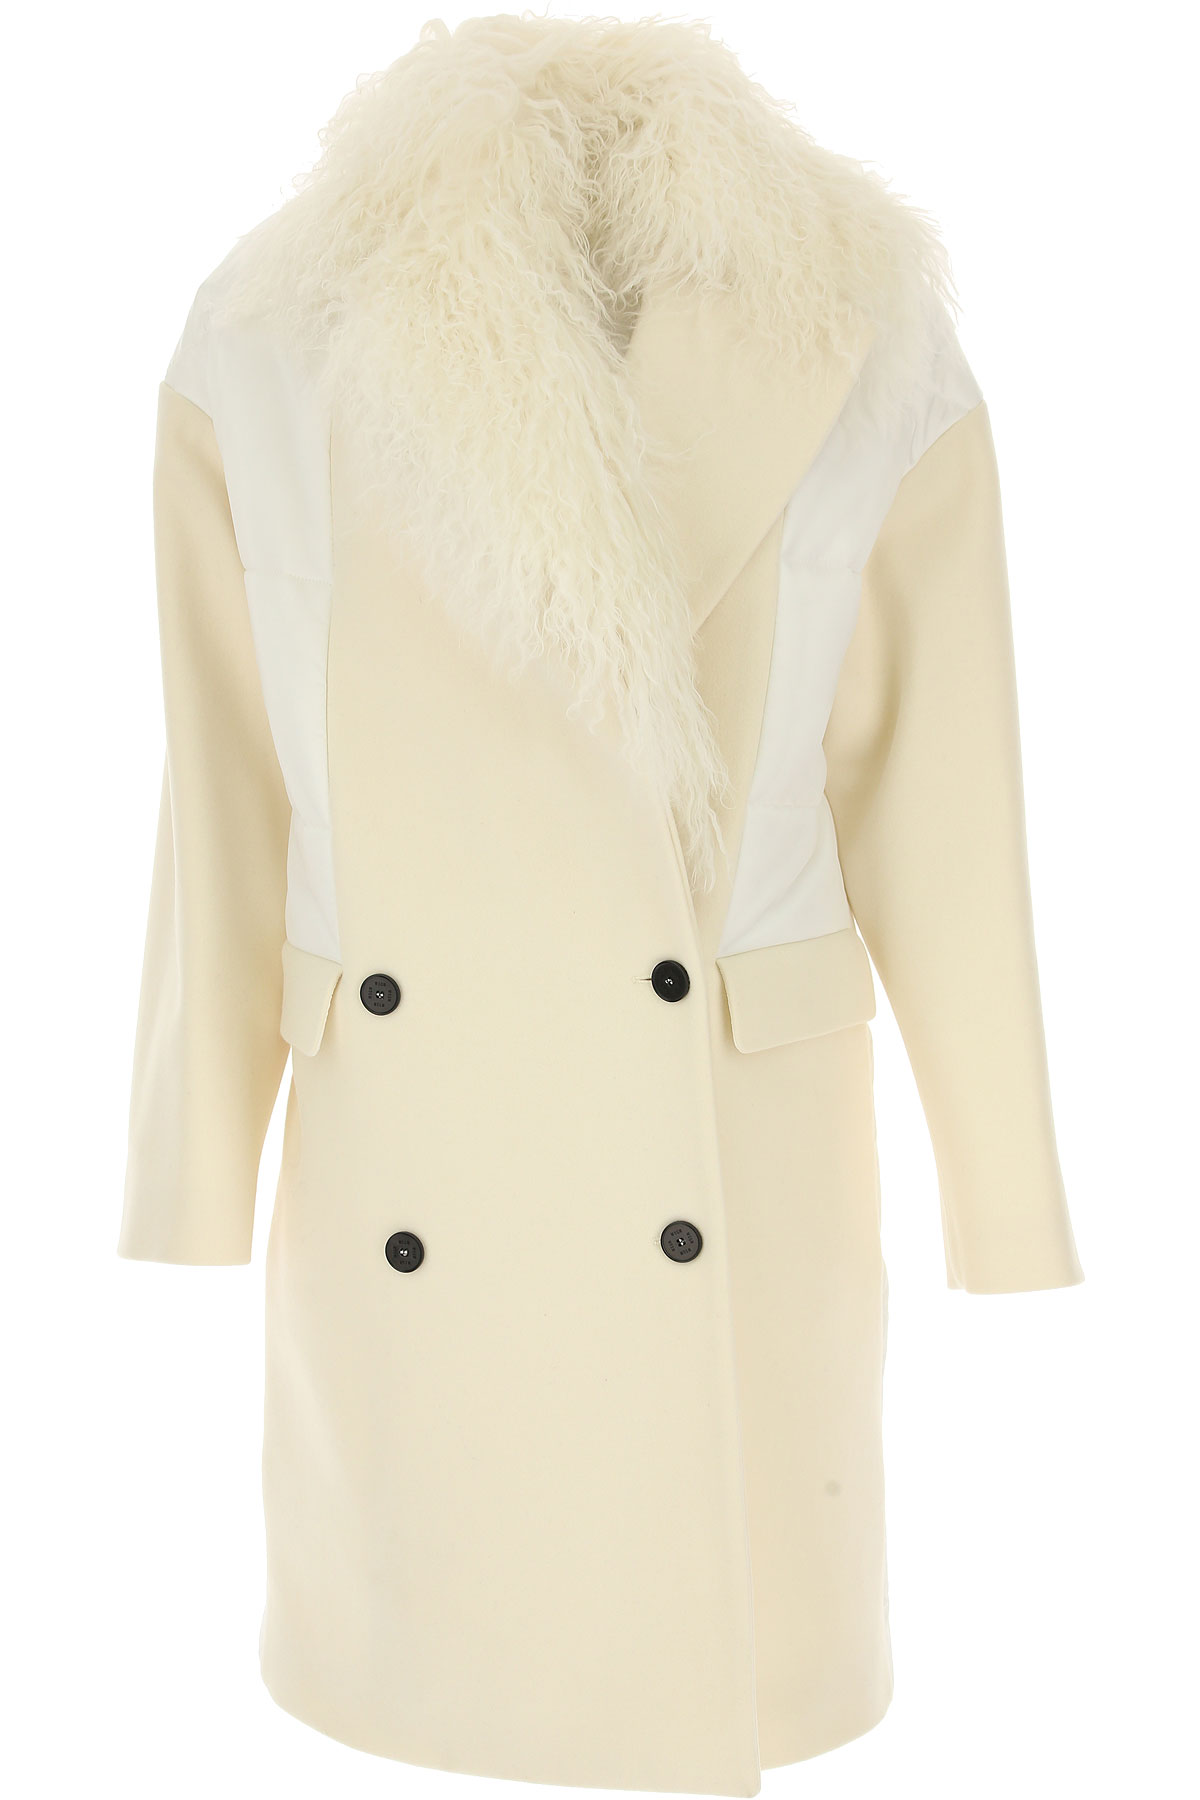 Image of MSGM Women\'s Coat, White, Wool, 2017, 4 6 8